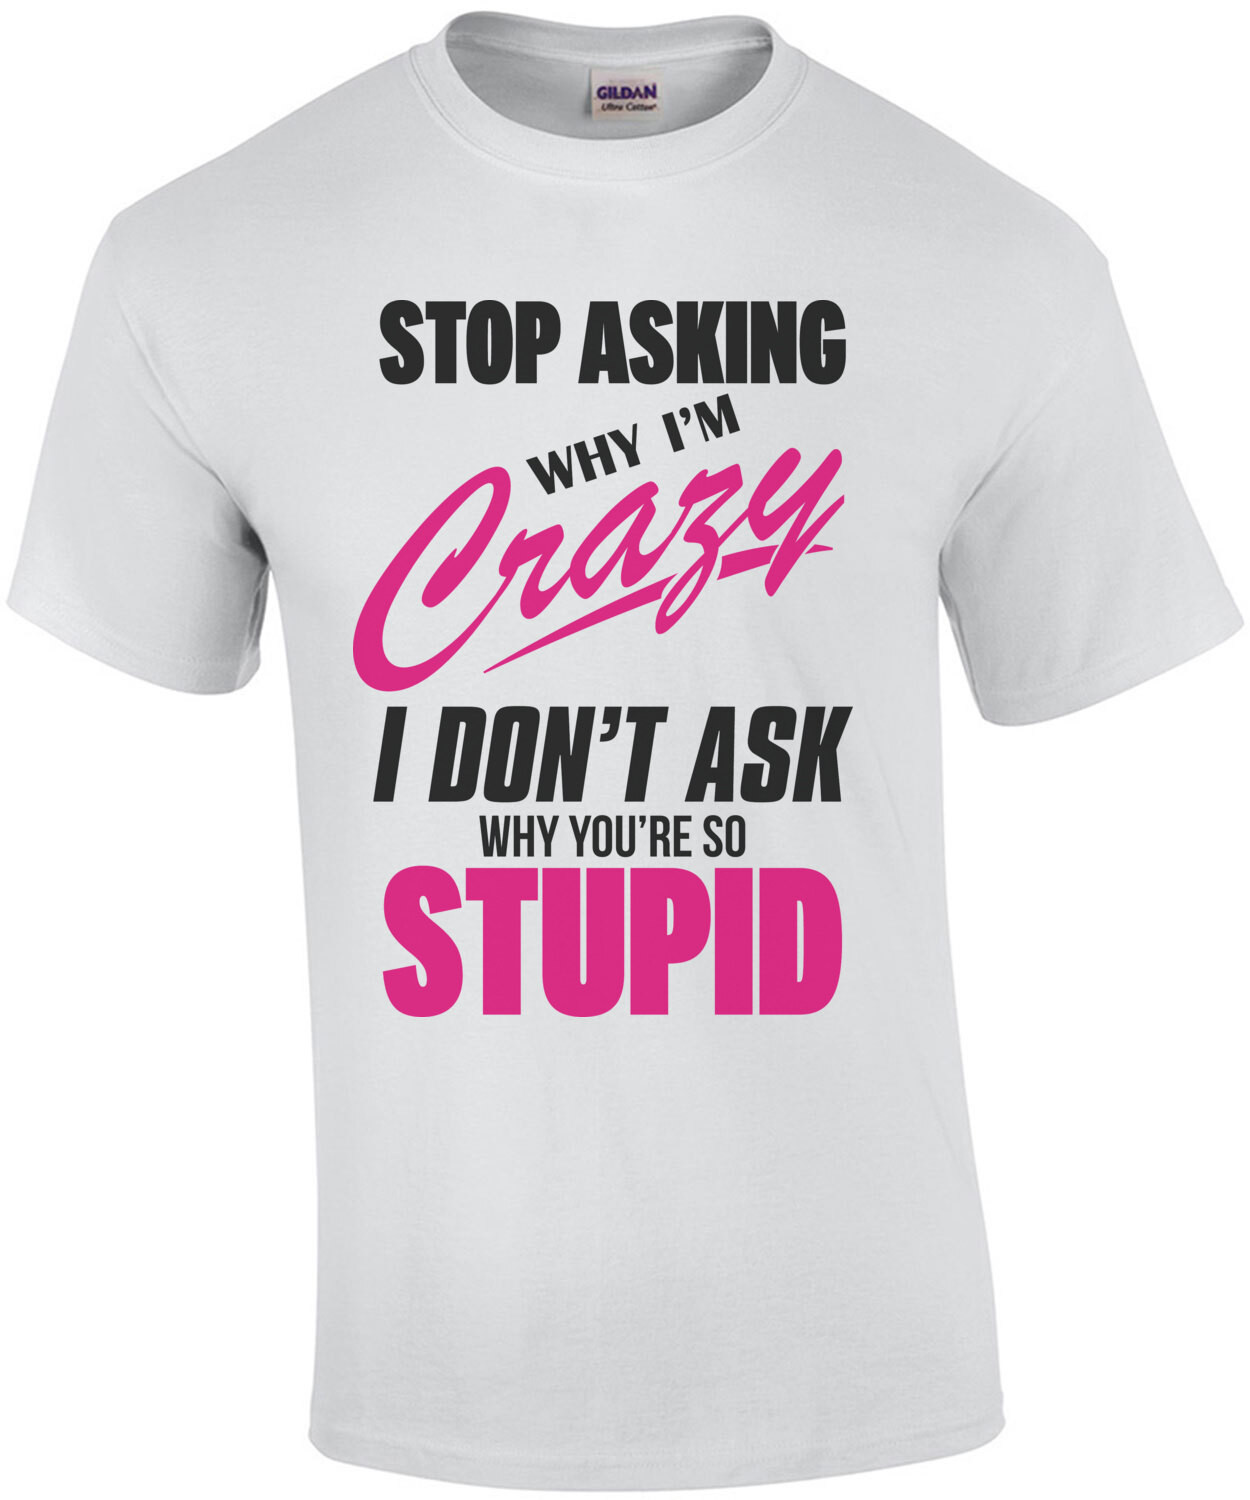 Stop asking why I'm crazy I don't ask why you're so stupid - funny t-shirt